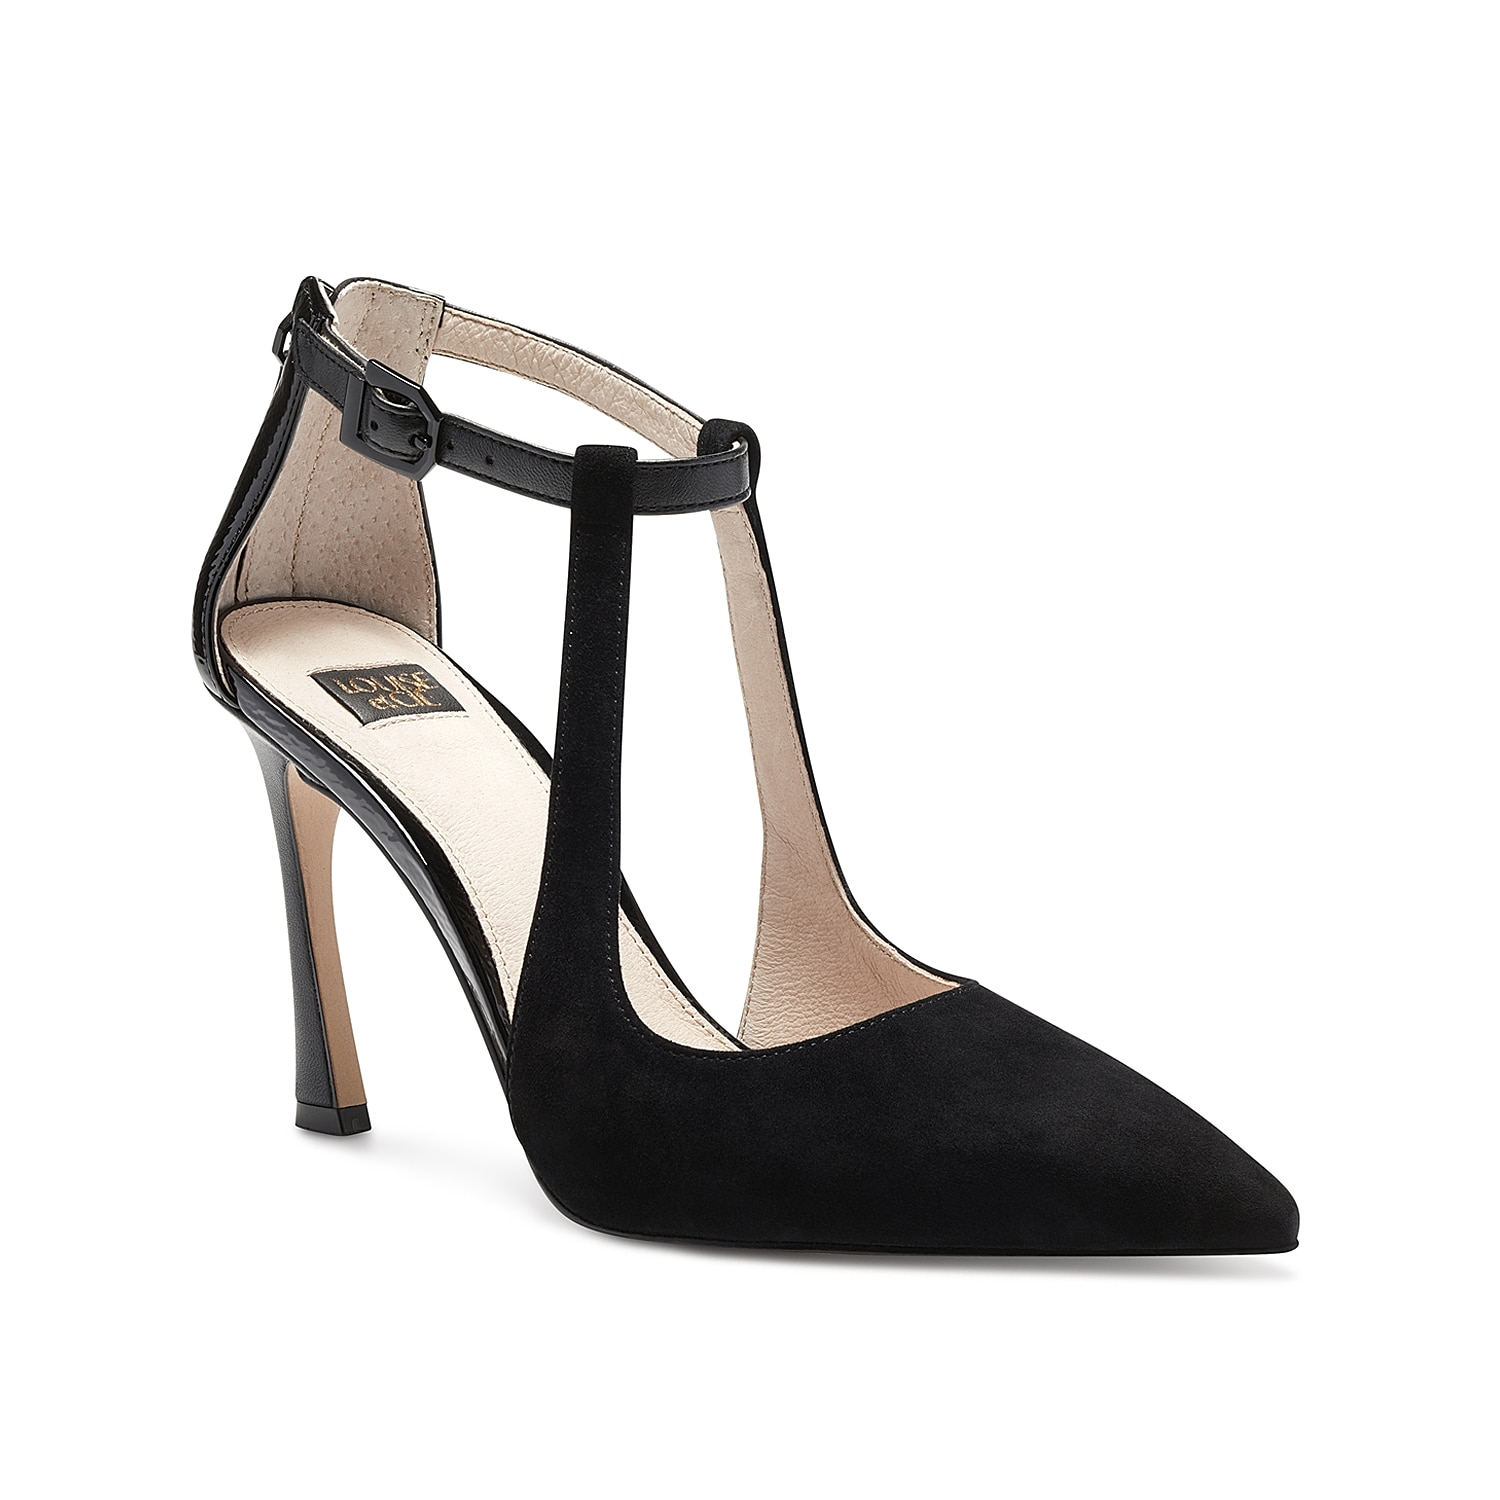 Add elegance to your overall ensemble pairing the beautiful Louise Et Cie Taniel dress pump. Gorgeous slim straps conjoin the pointy forefoot with the ankle strap while a unique tapered heel brings in added flair.